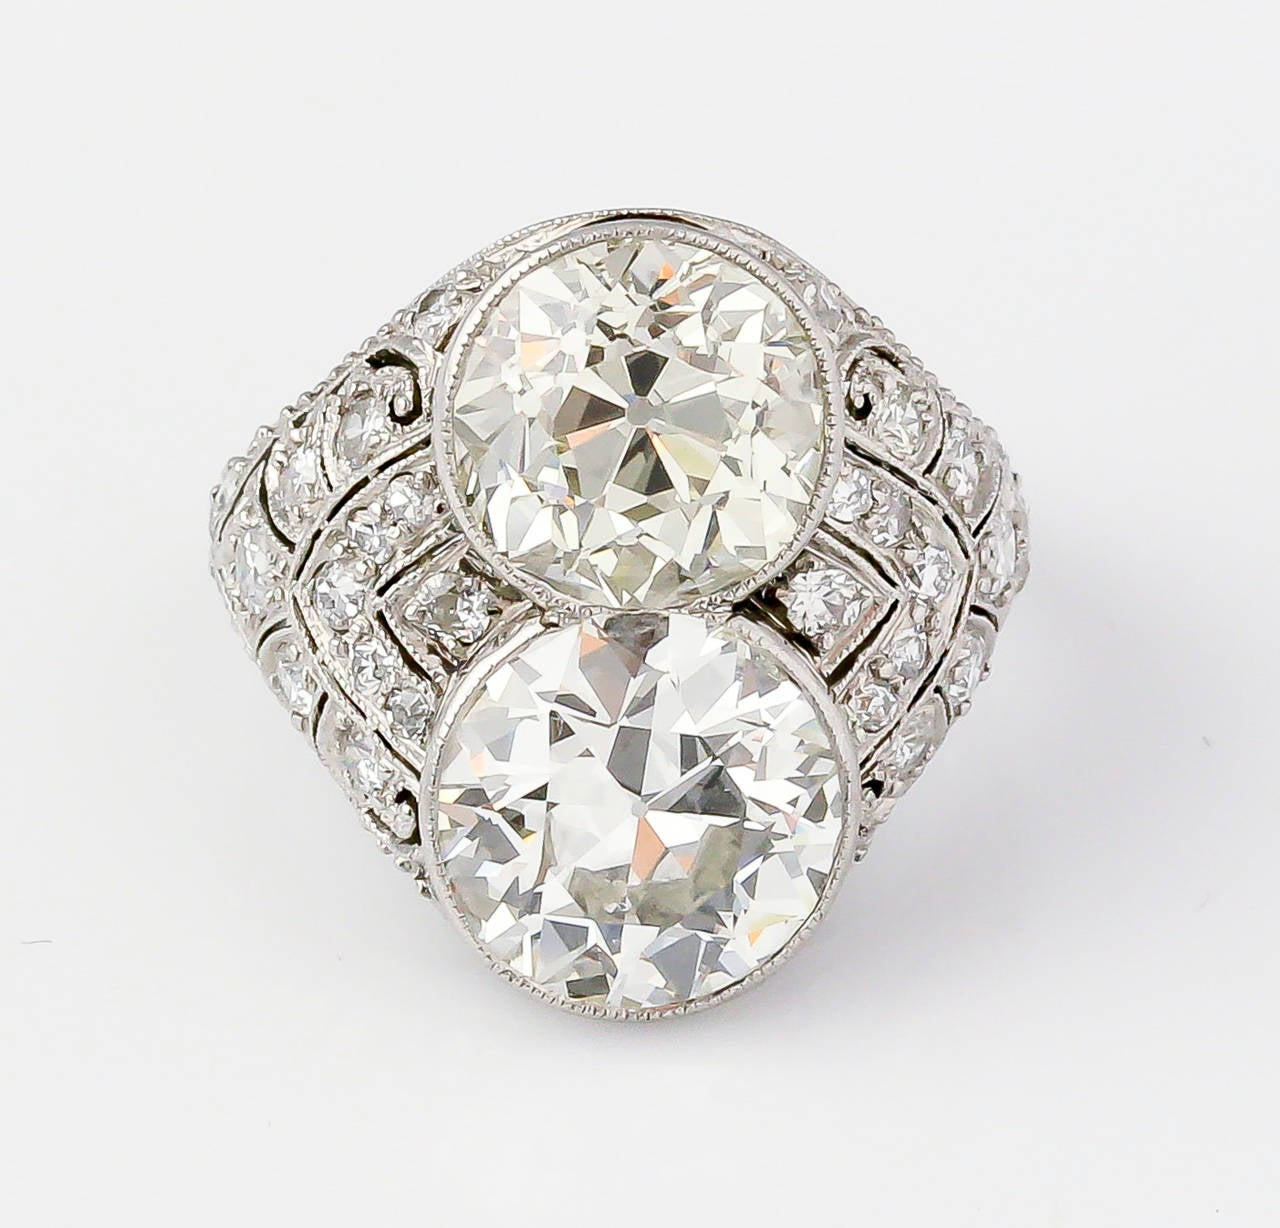 Impressive diamond and platinum cocktail ring from the Art Deco period, circa 1930s. It features two central stones, each approx. 3.5 carats, with high grade round brilliant cut diamonds around the sides.